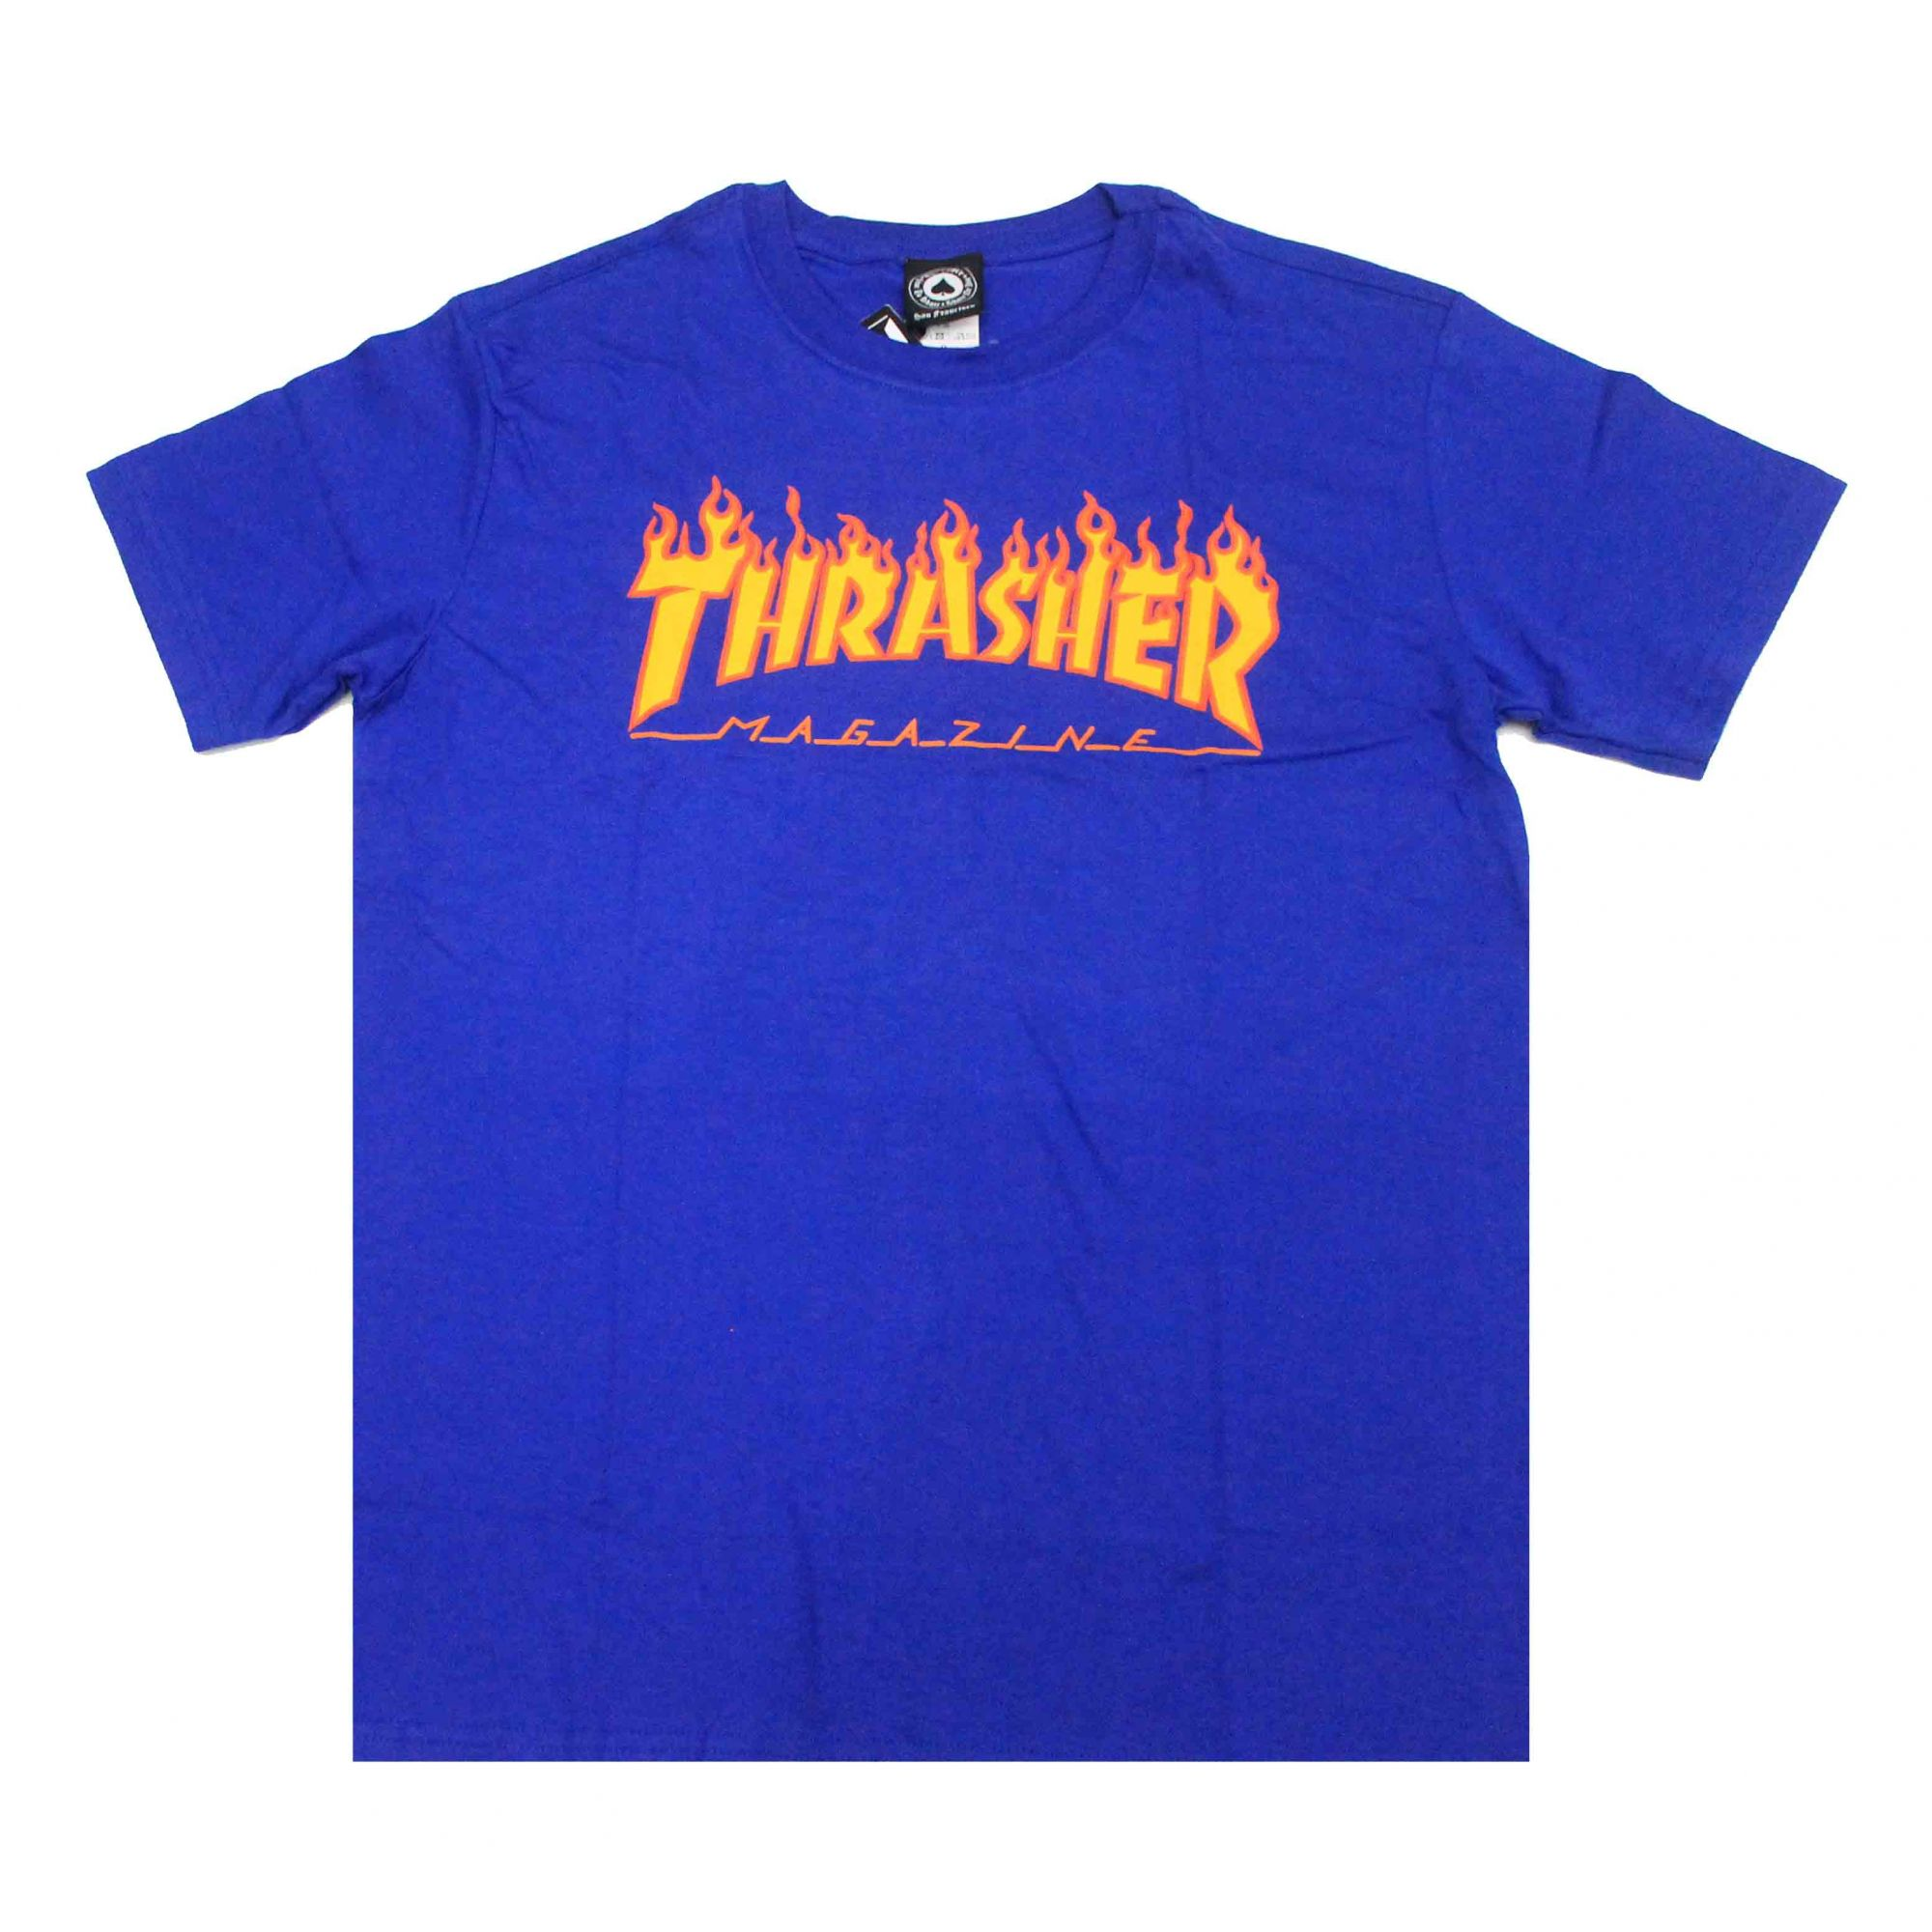 Camiseta Thrasher Flame Royal